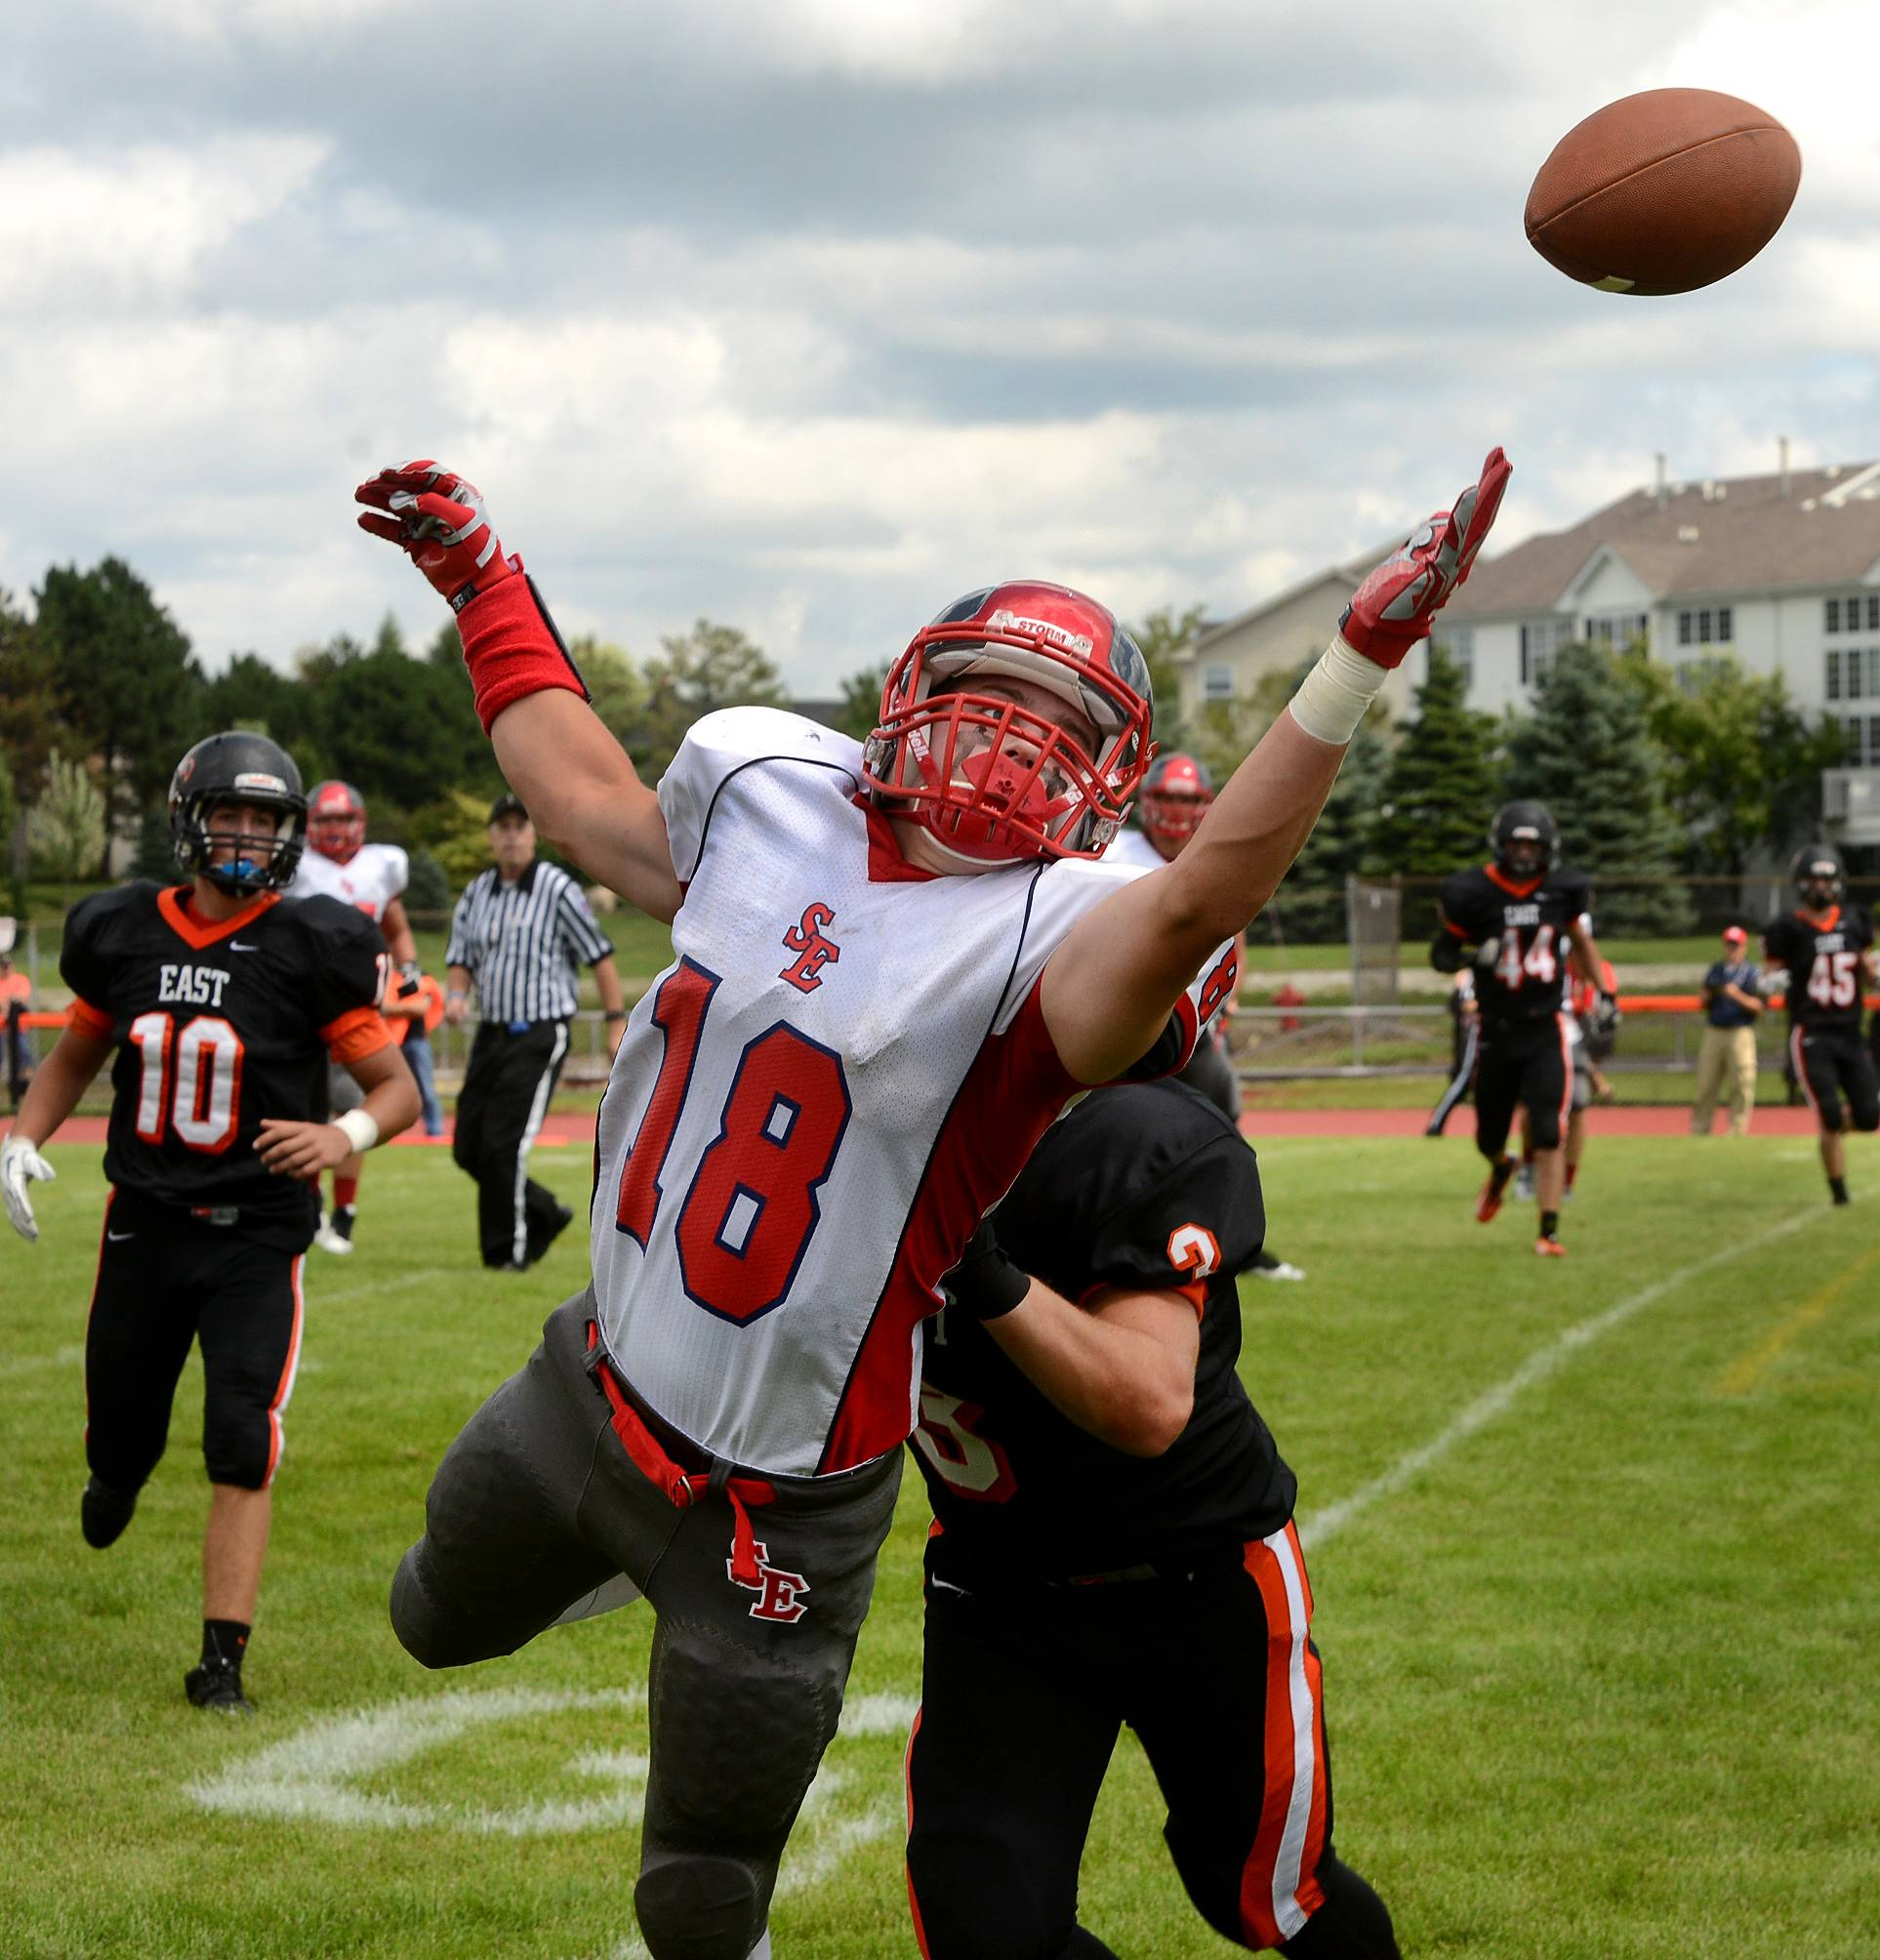 Nick Menken of South Elgin stretches for a pass just out of reach while being defended by Tommy Fink of St. Charles, during second quarter action of South Elgin at St. Charles East football.